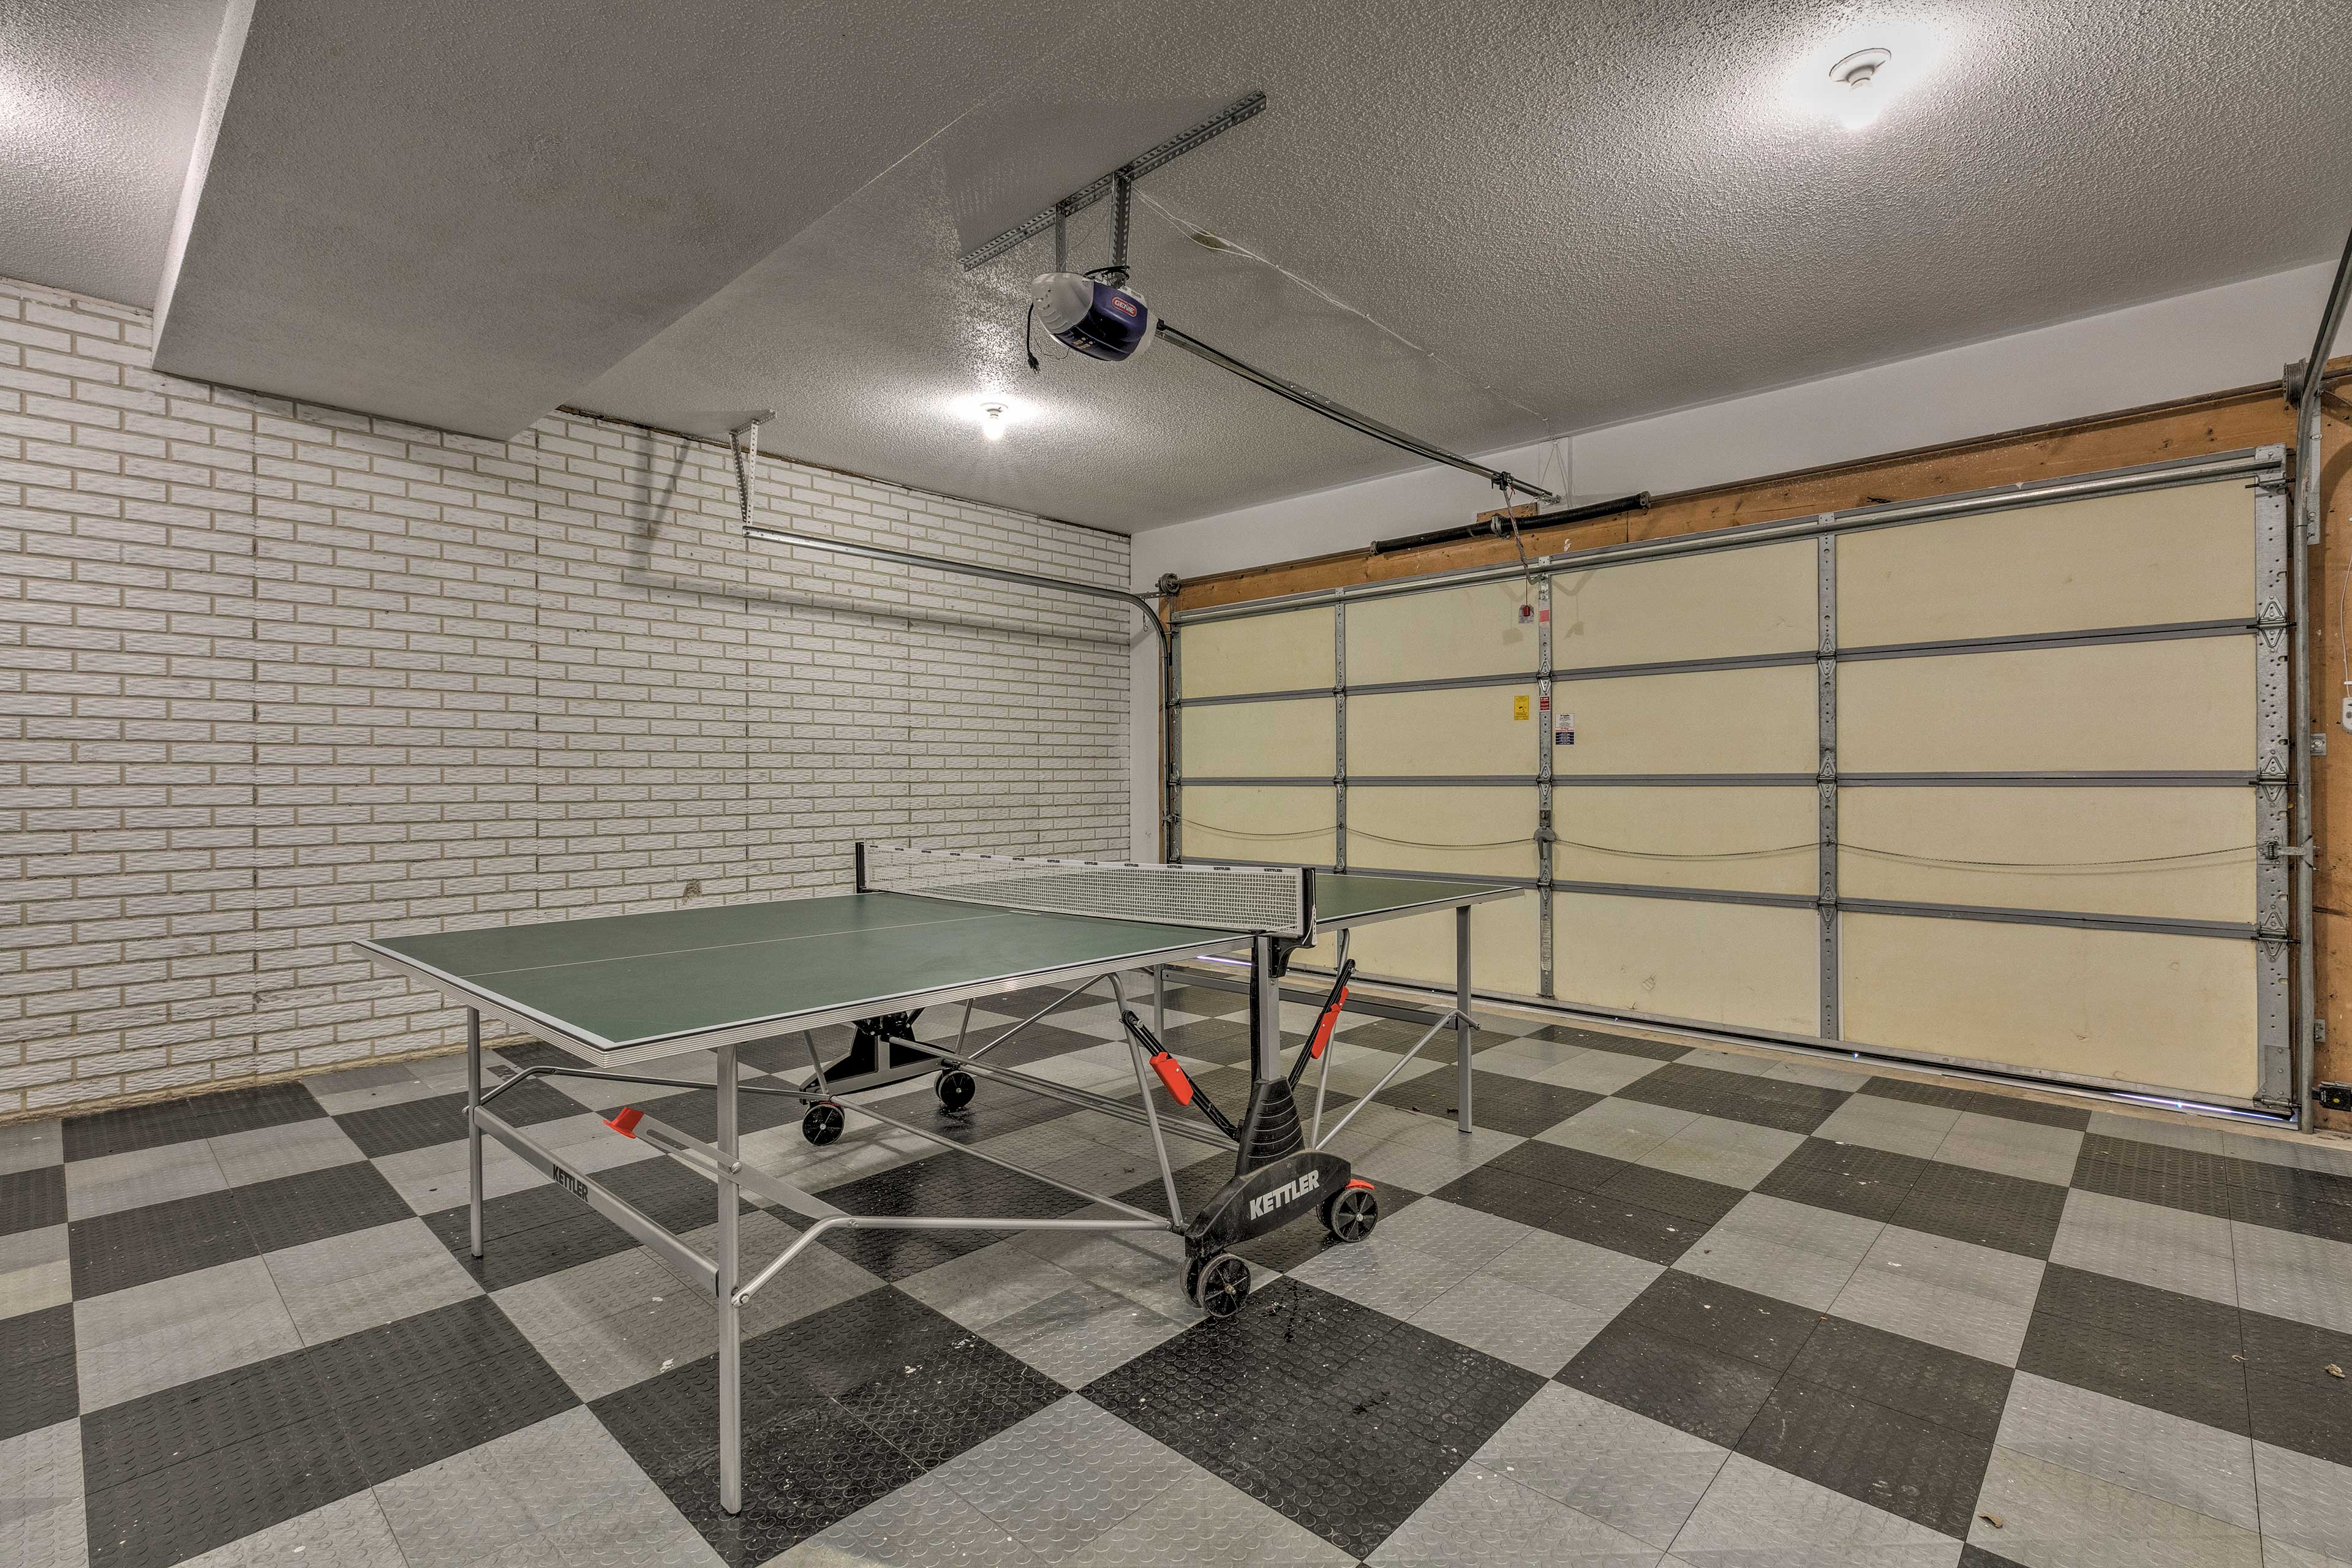 Challenge your travel companions to a game of ping pong!